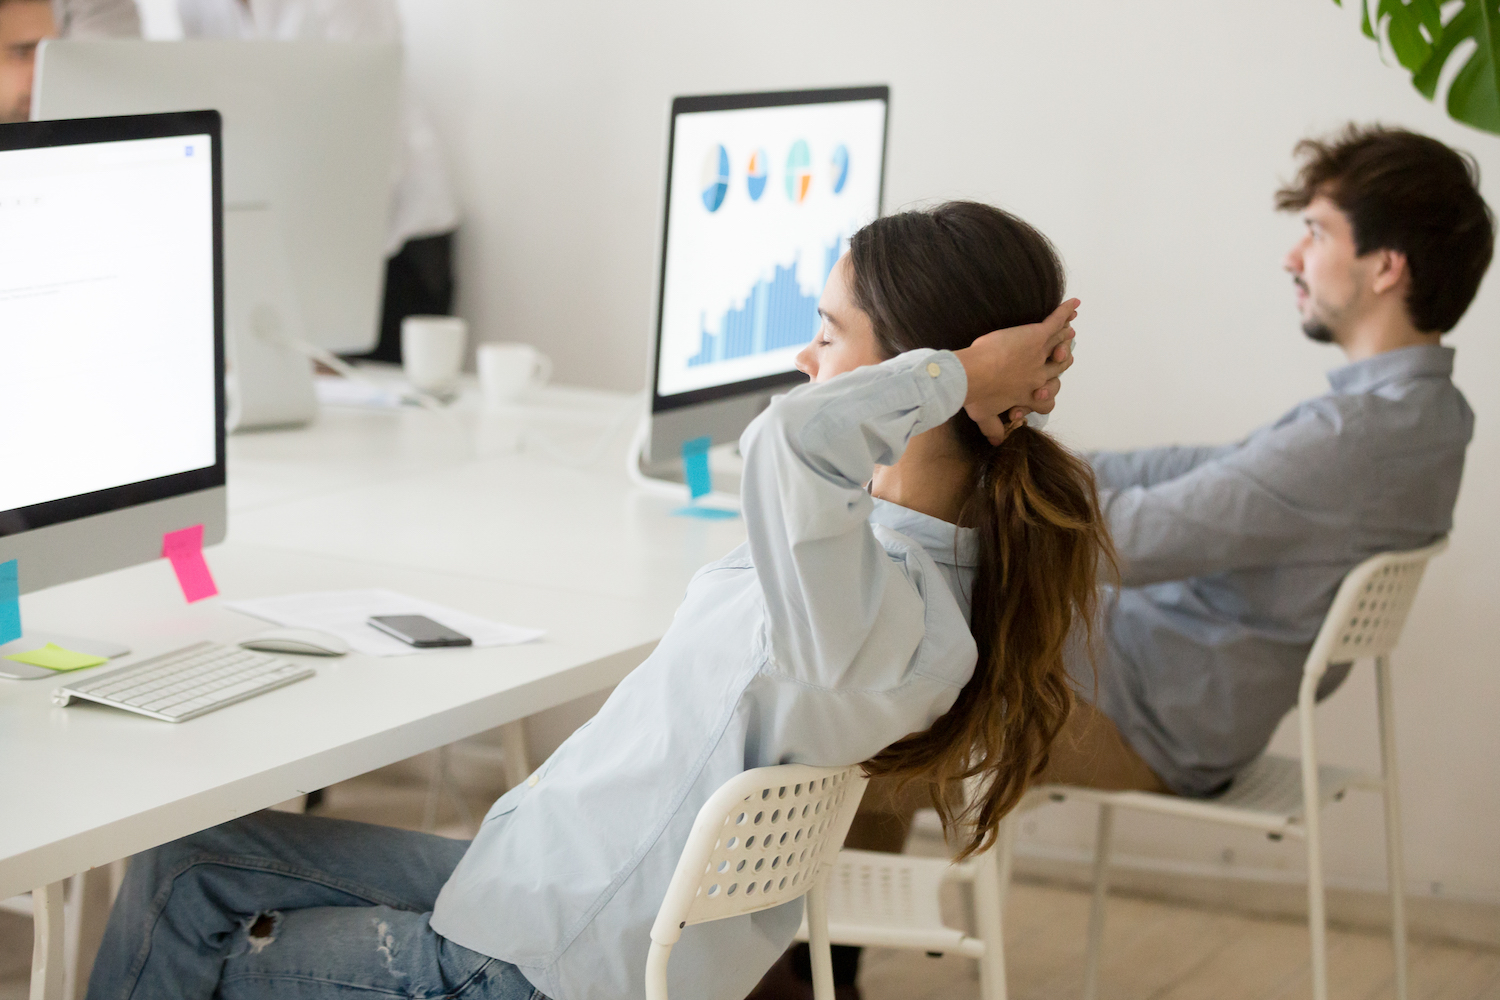 Female employee relaxing from computer work holding hands behind head